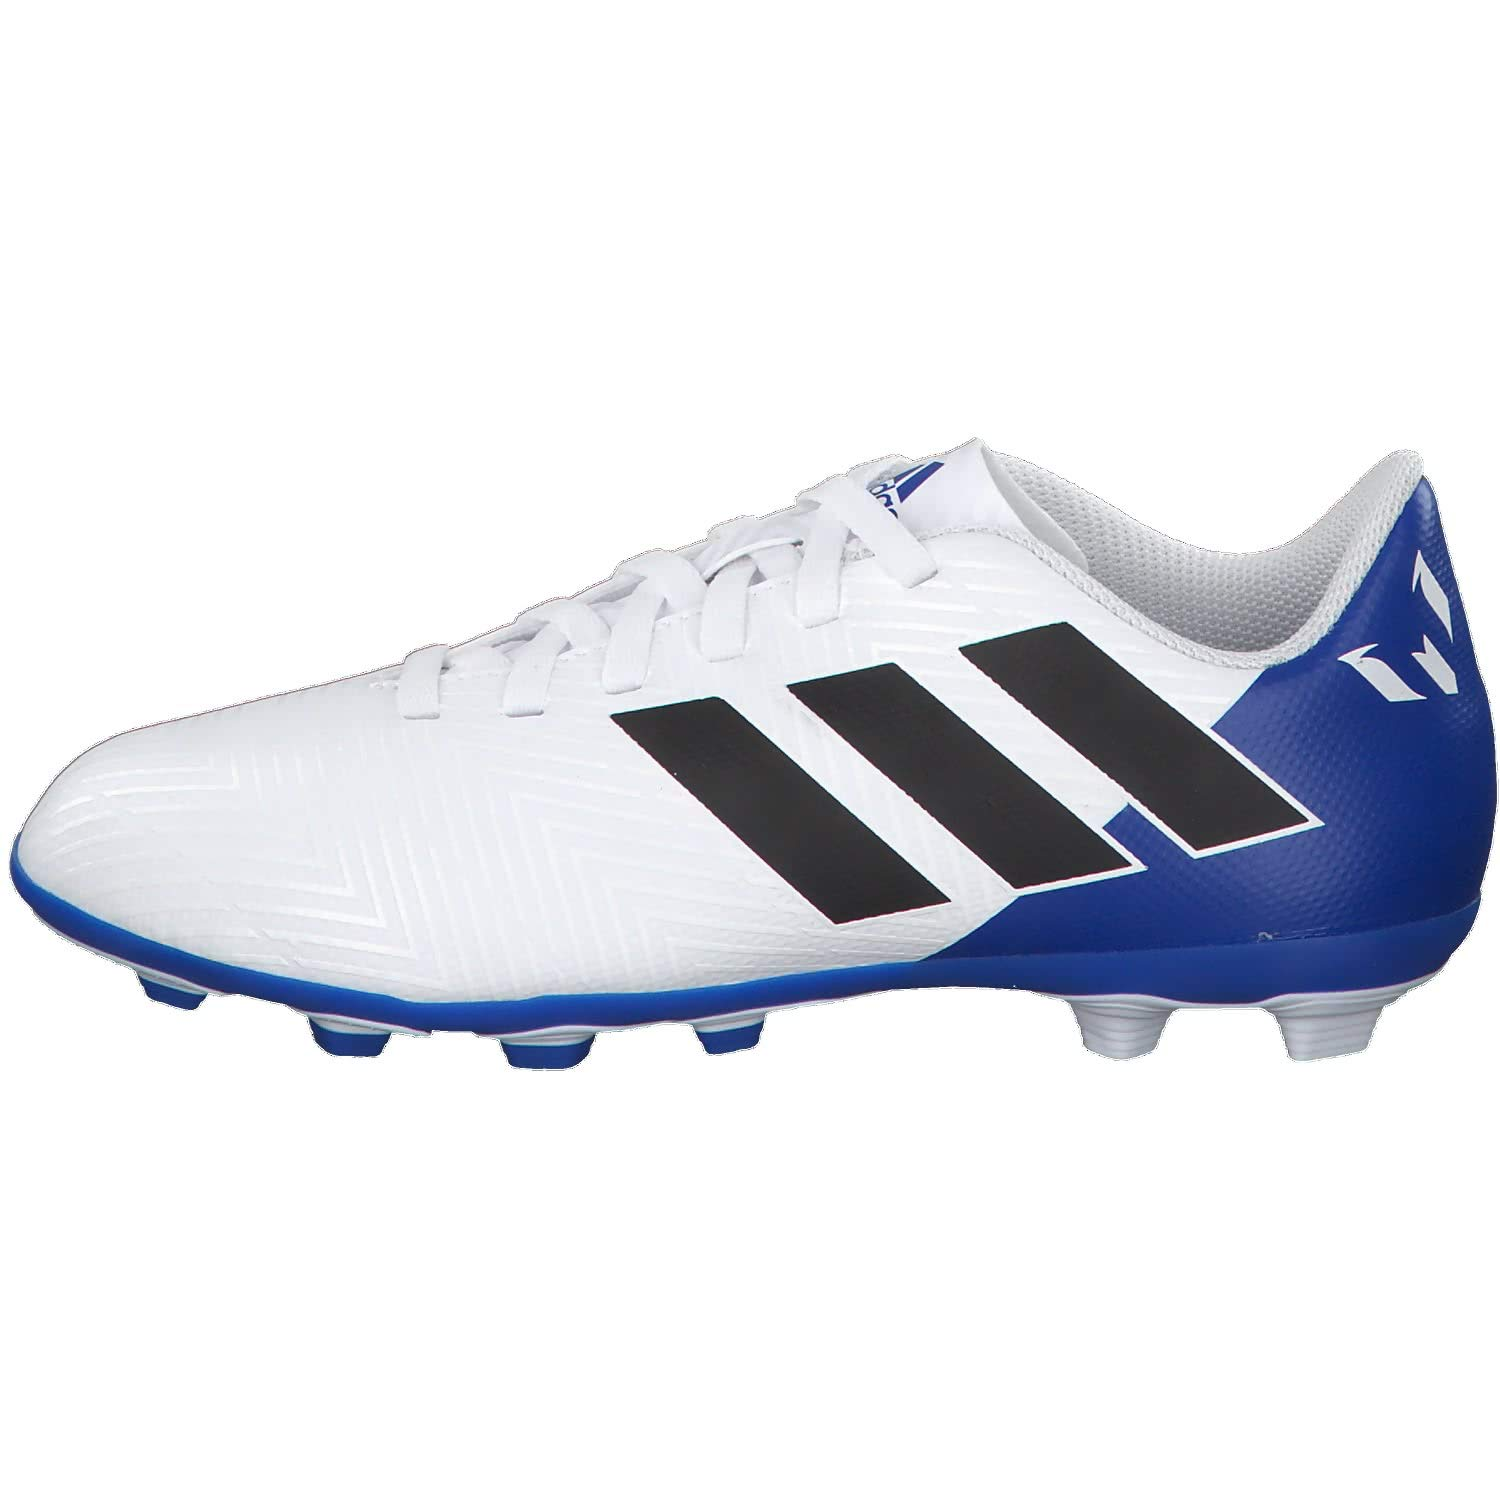 at Online Buy India Amazon Messi Nemeziz Football Boy's FxG 4 Adidas in Prices Shoes Low 18 J in qpxPwZSnzv